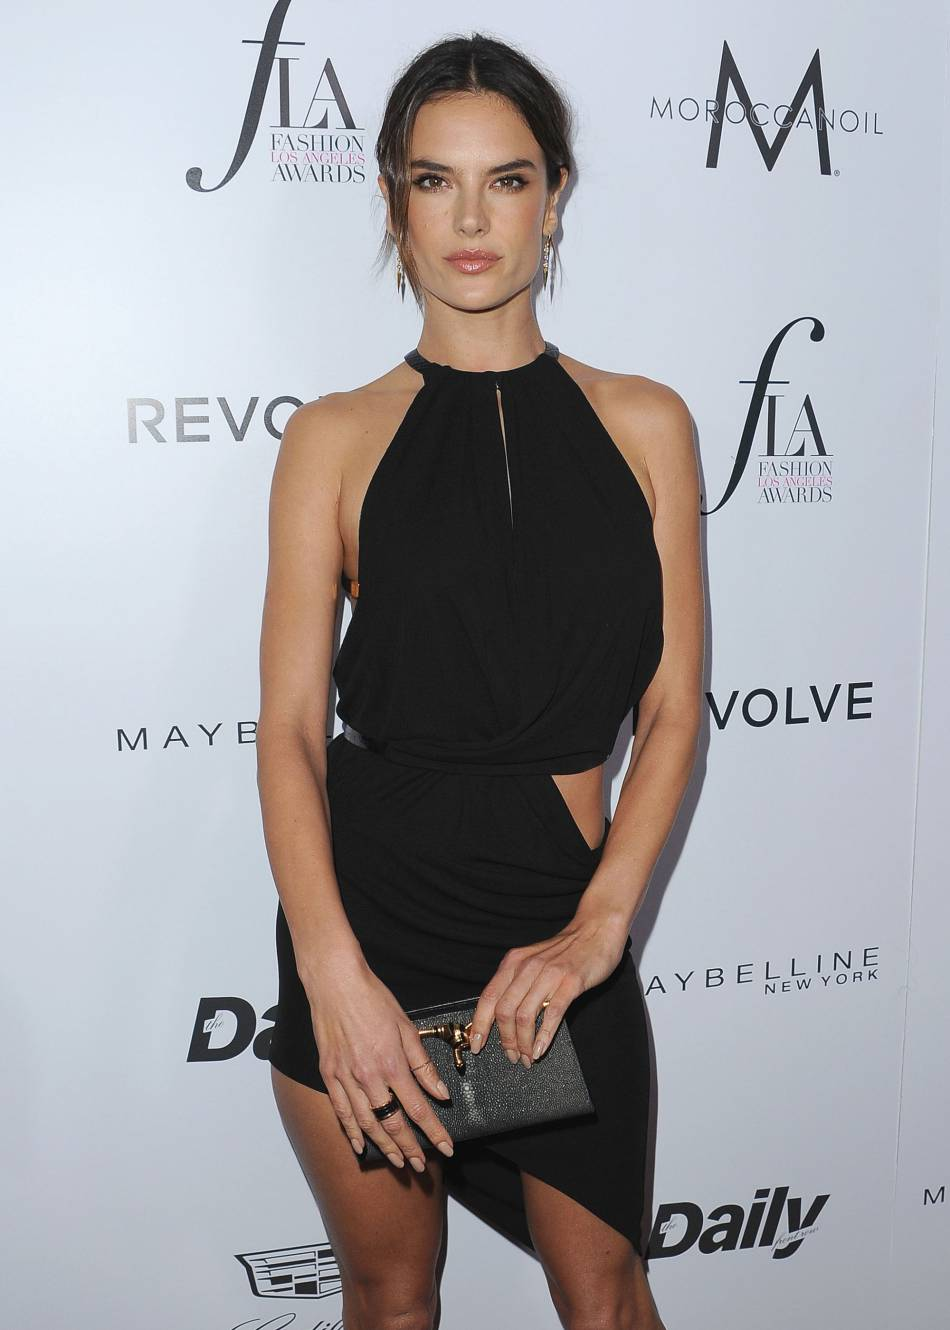 Le mannequin ultra sexy, Alessandra Ambrosio, fête ses 34 ans.